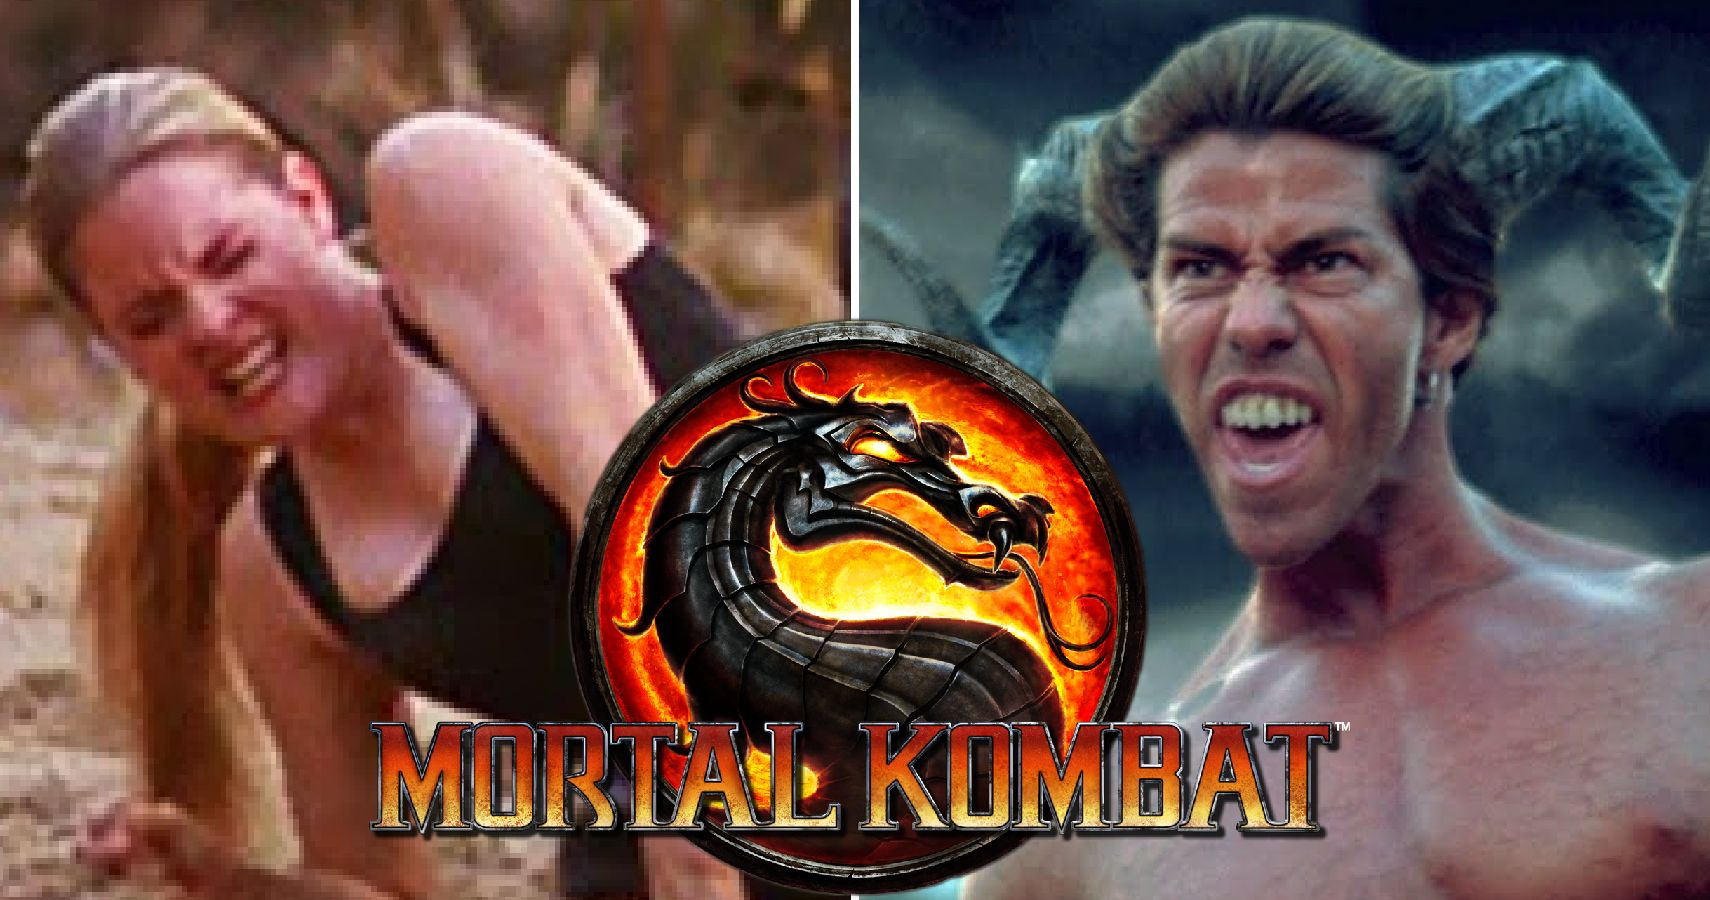 dark facts you never knew about the failed mortal kombat movies